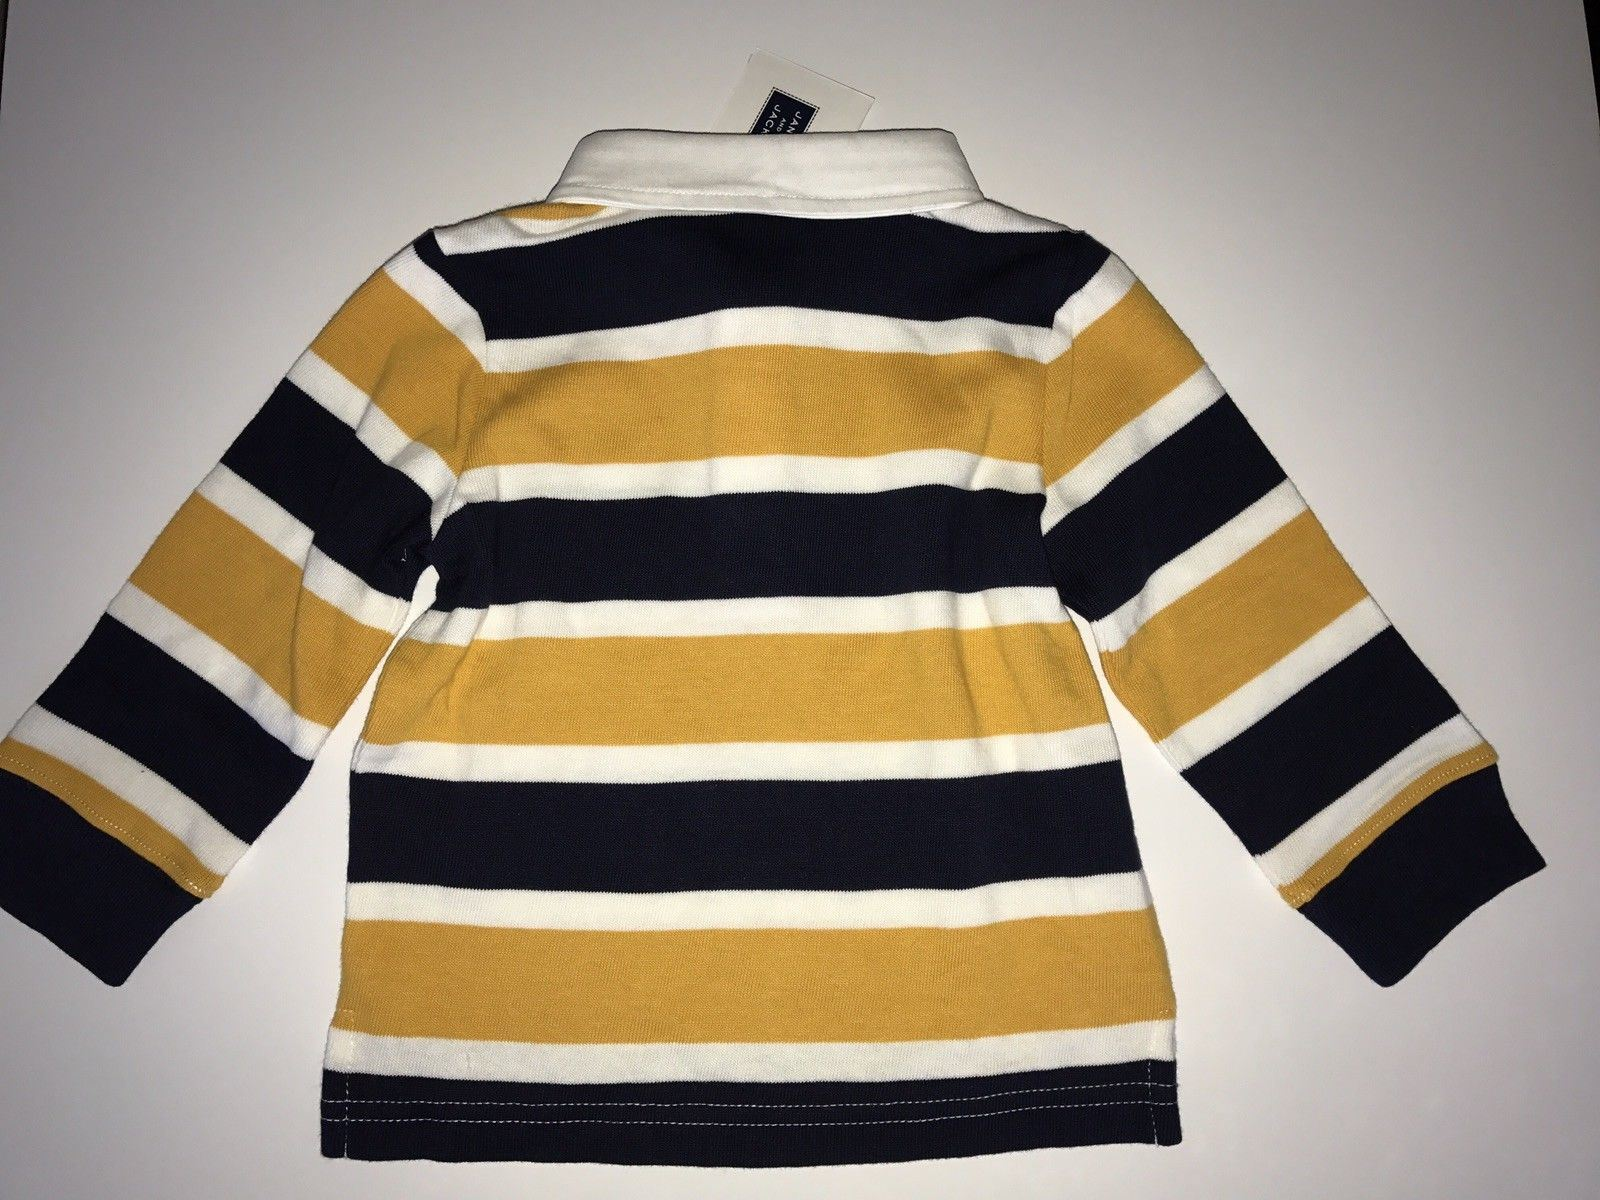 NWT $36 Janie and Jack Boy's Striped Polo Tee Size 12 to 18 Months